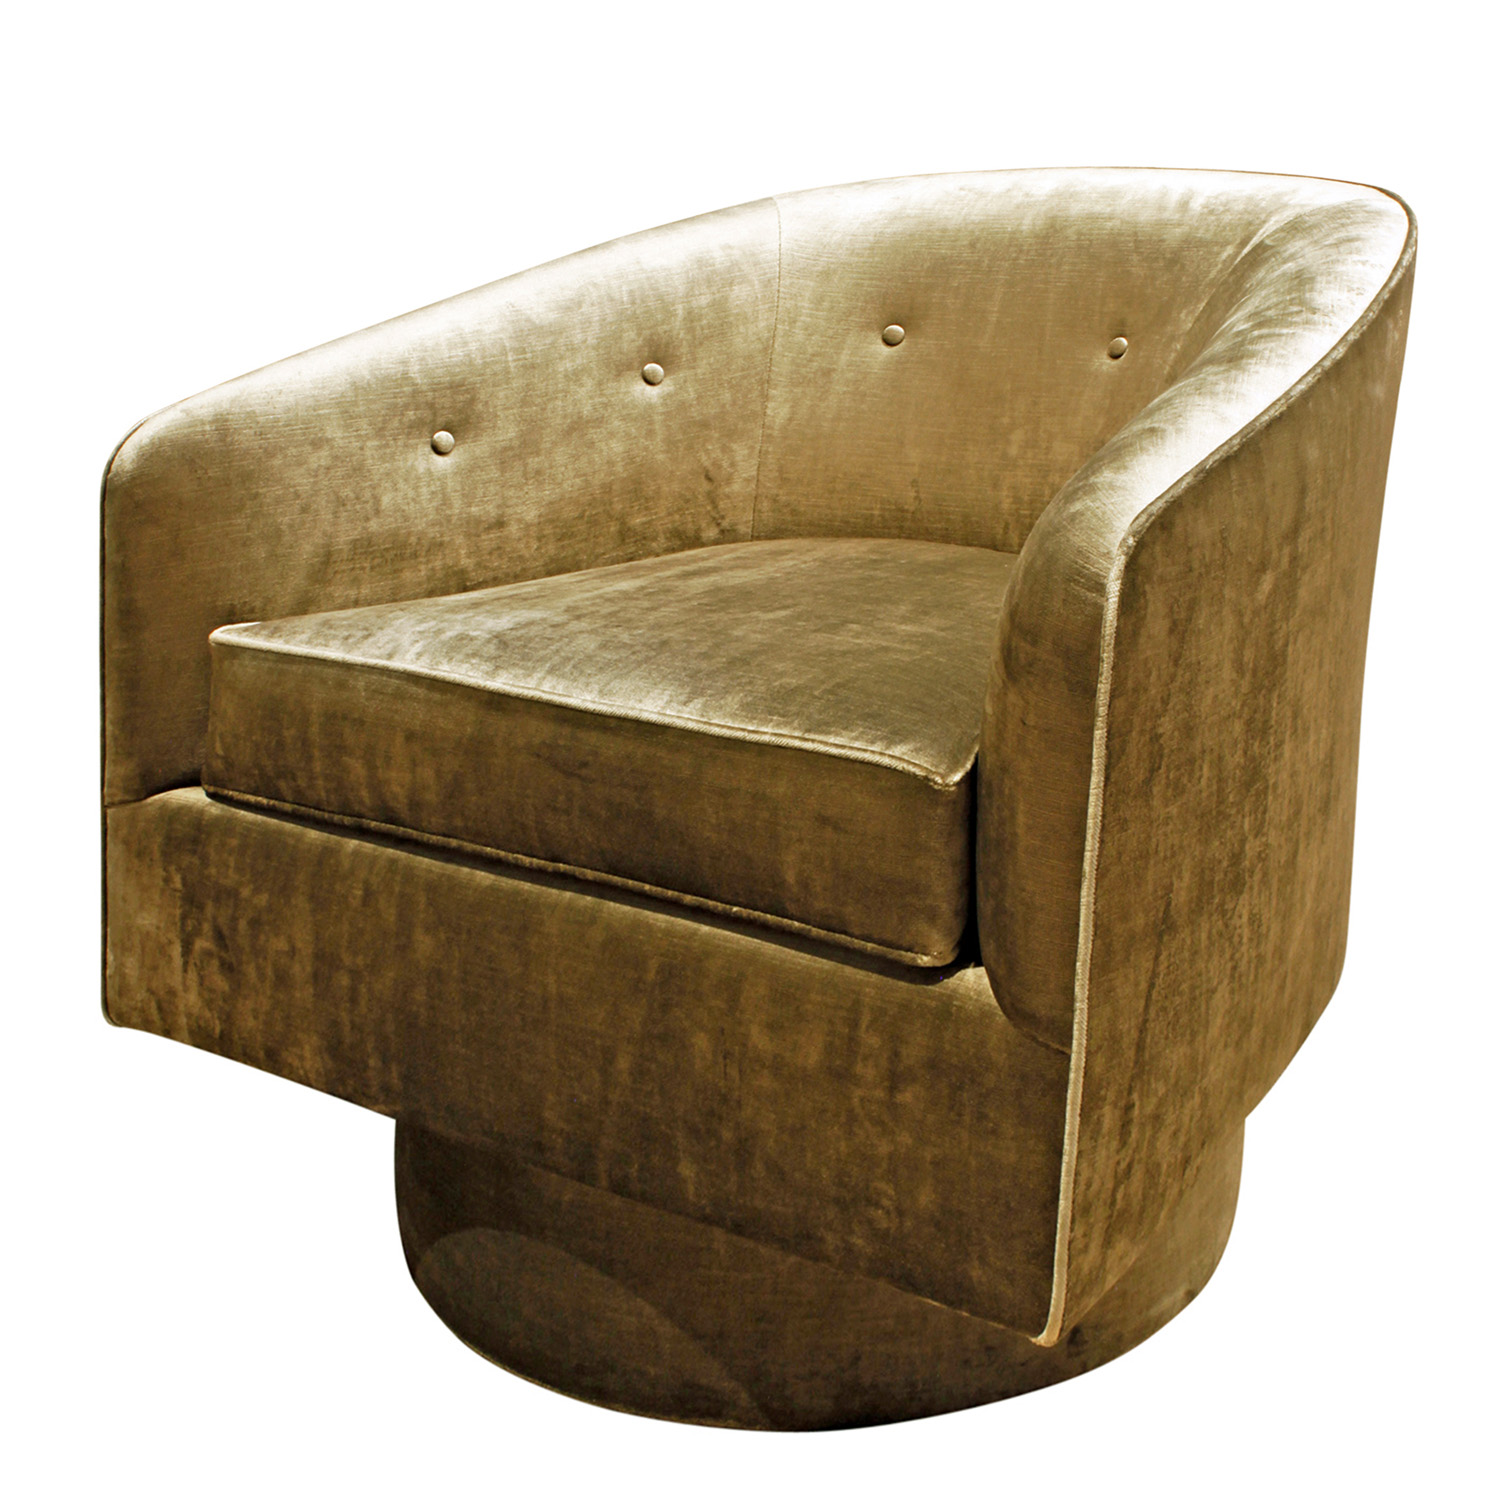 60s 75 barrel bk sml swivel bronz loungechairs157 agl.jpg